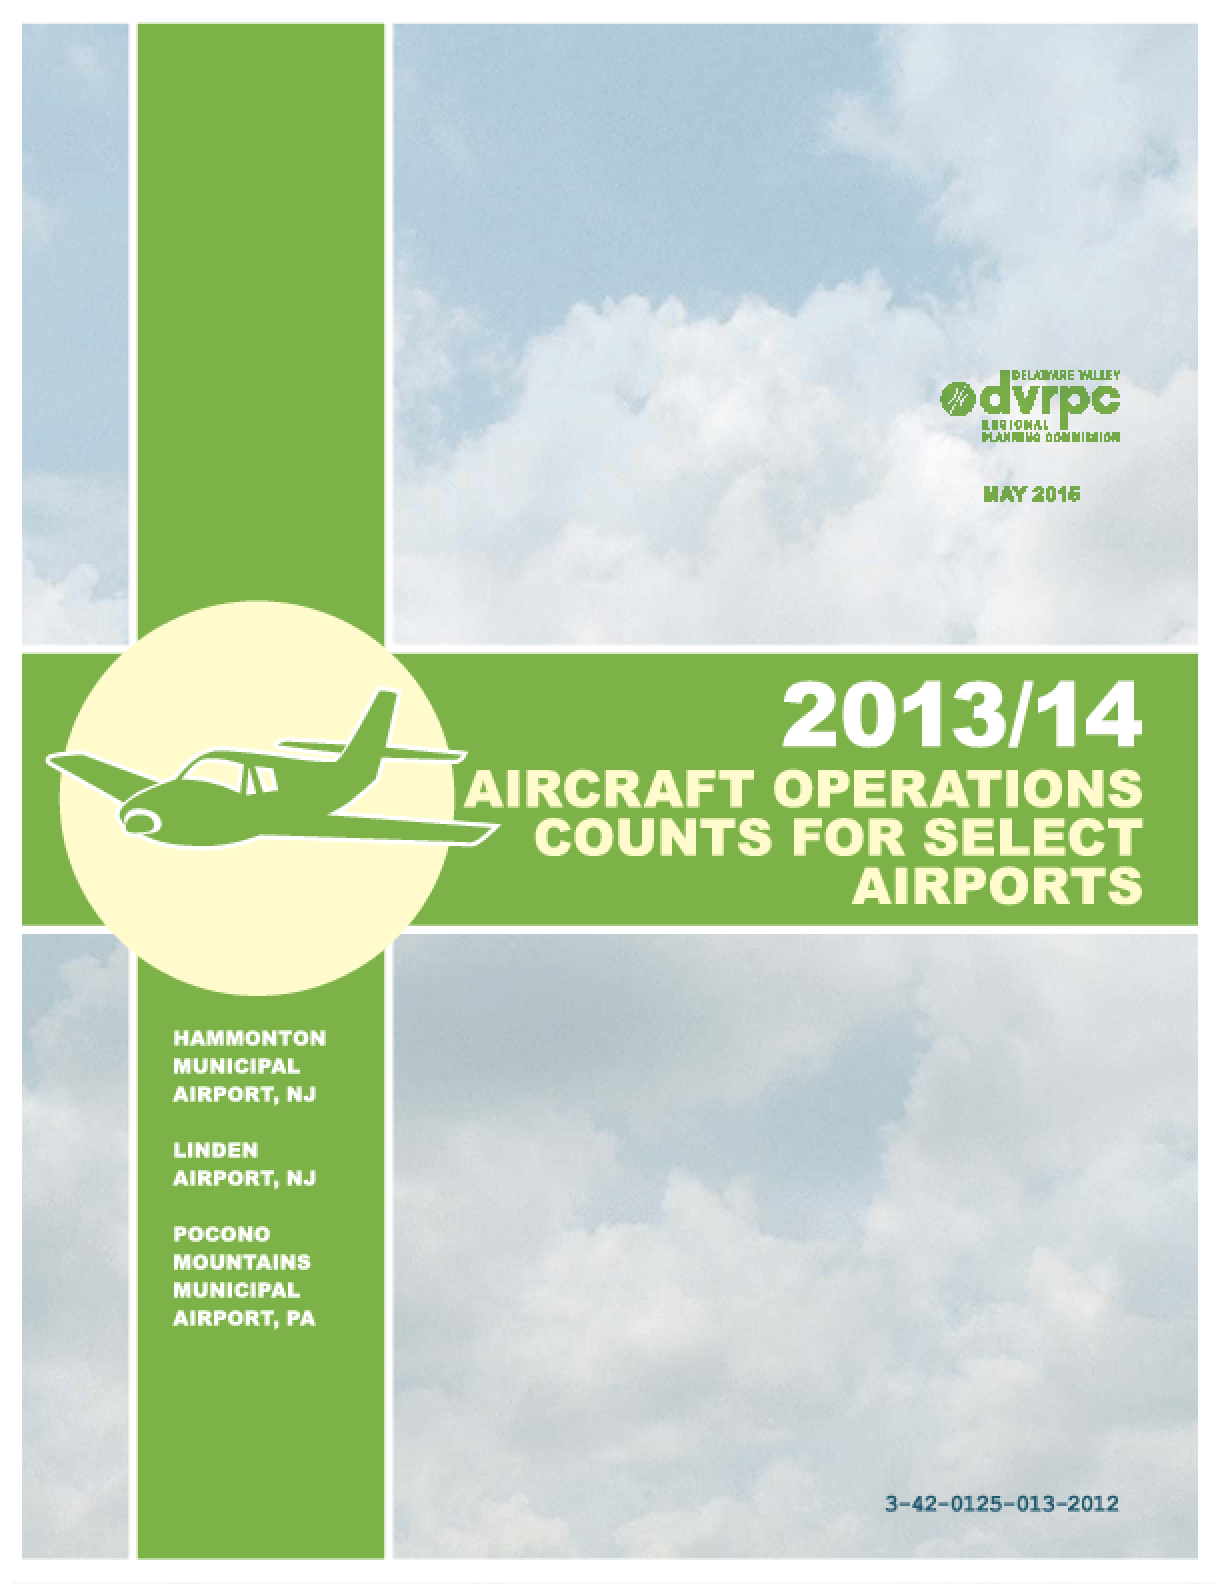 2013/14 Aircraft Operations Counts for Select Airports